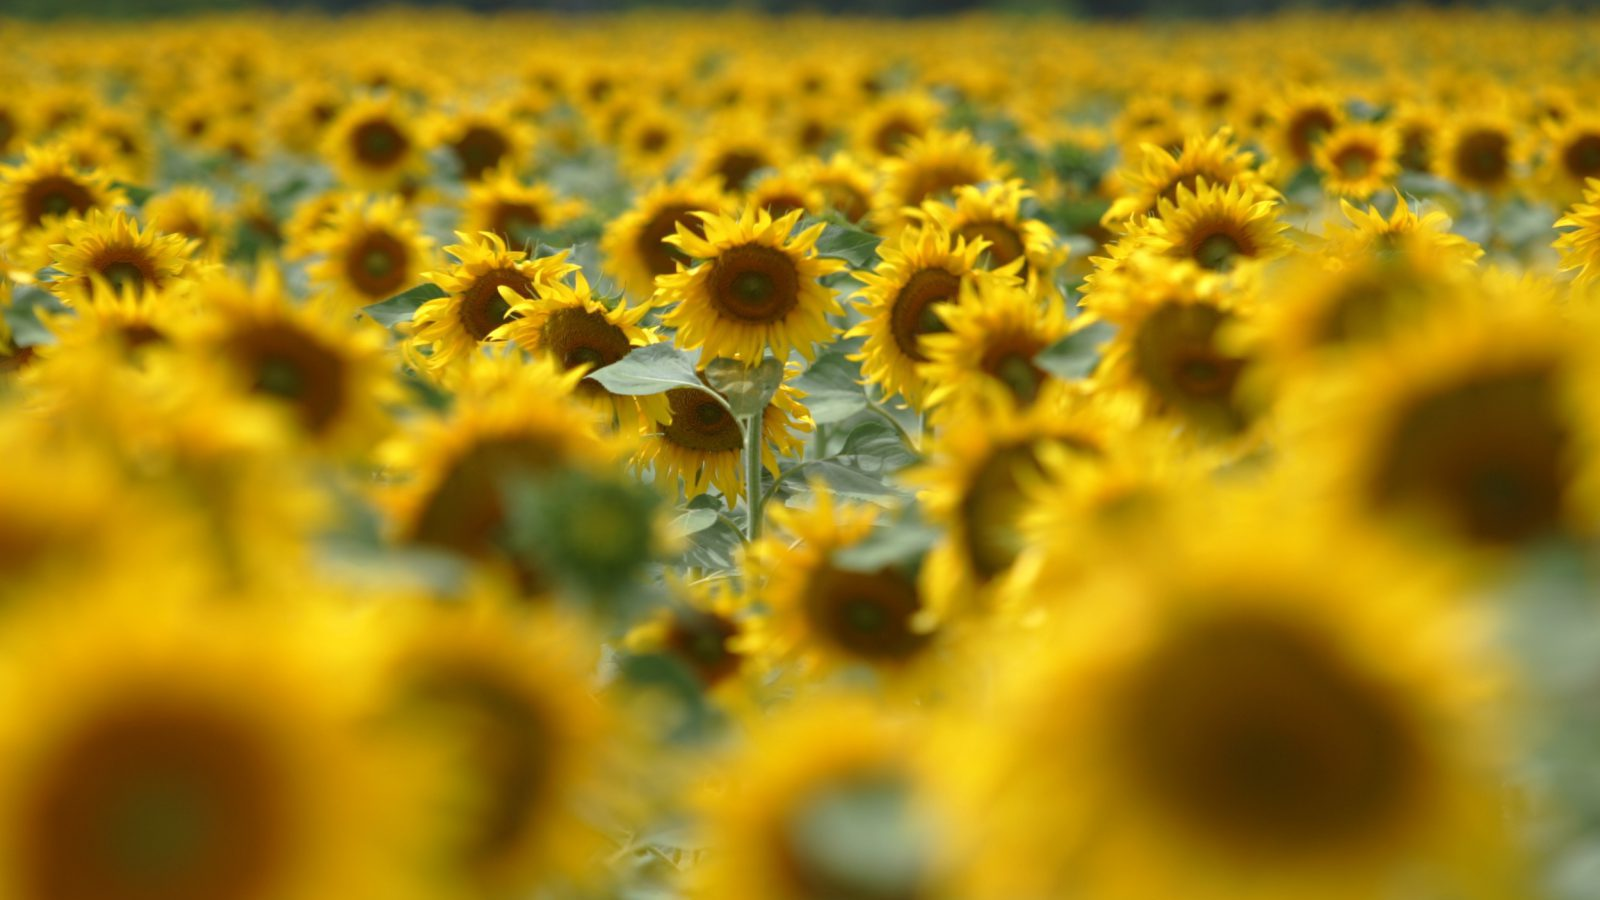 Sunflowers Have The Ability To Help Us Understand Climate Change